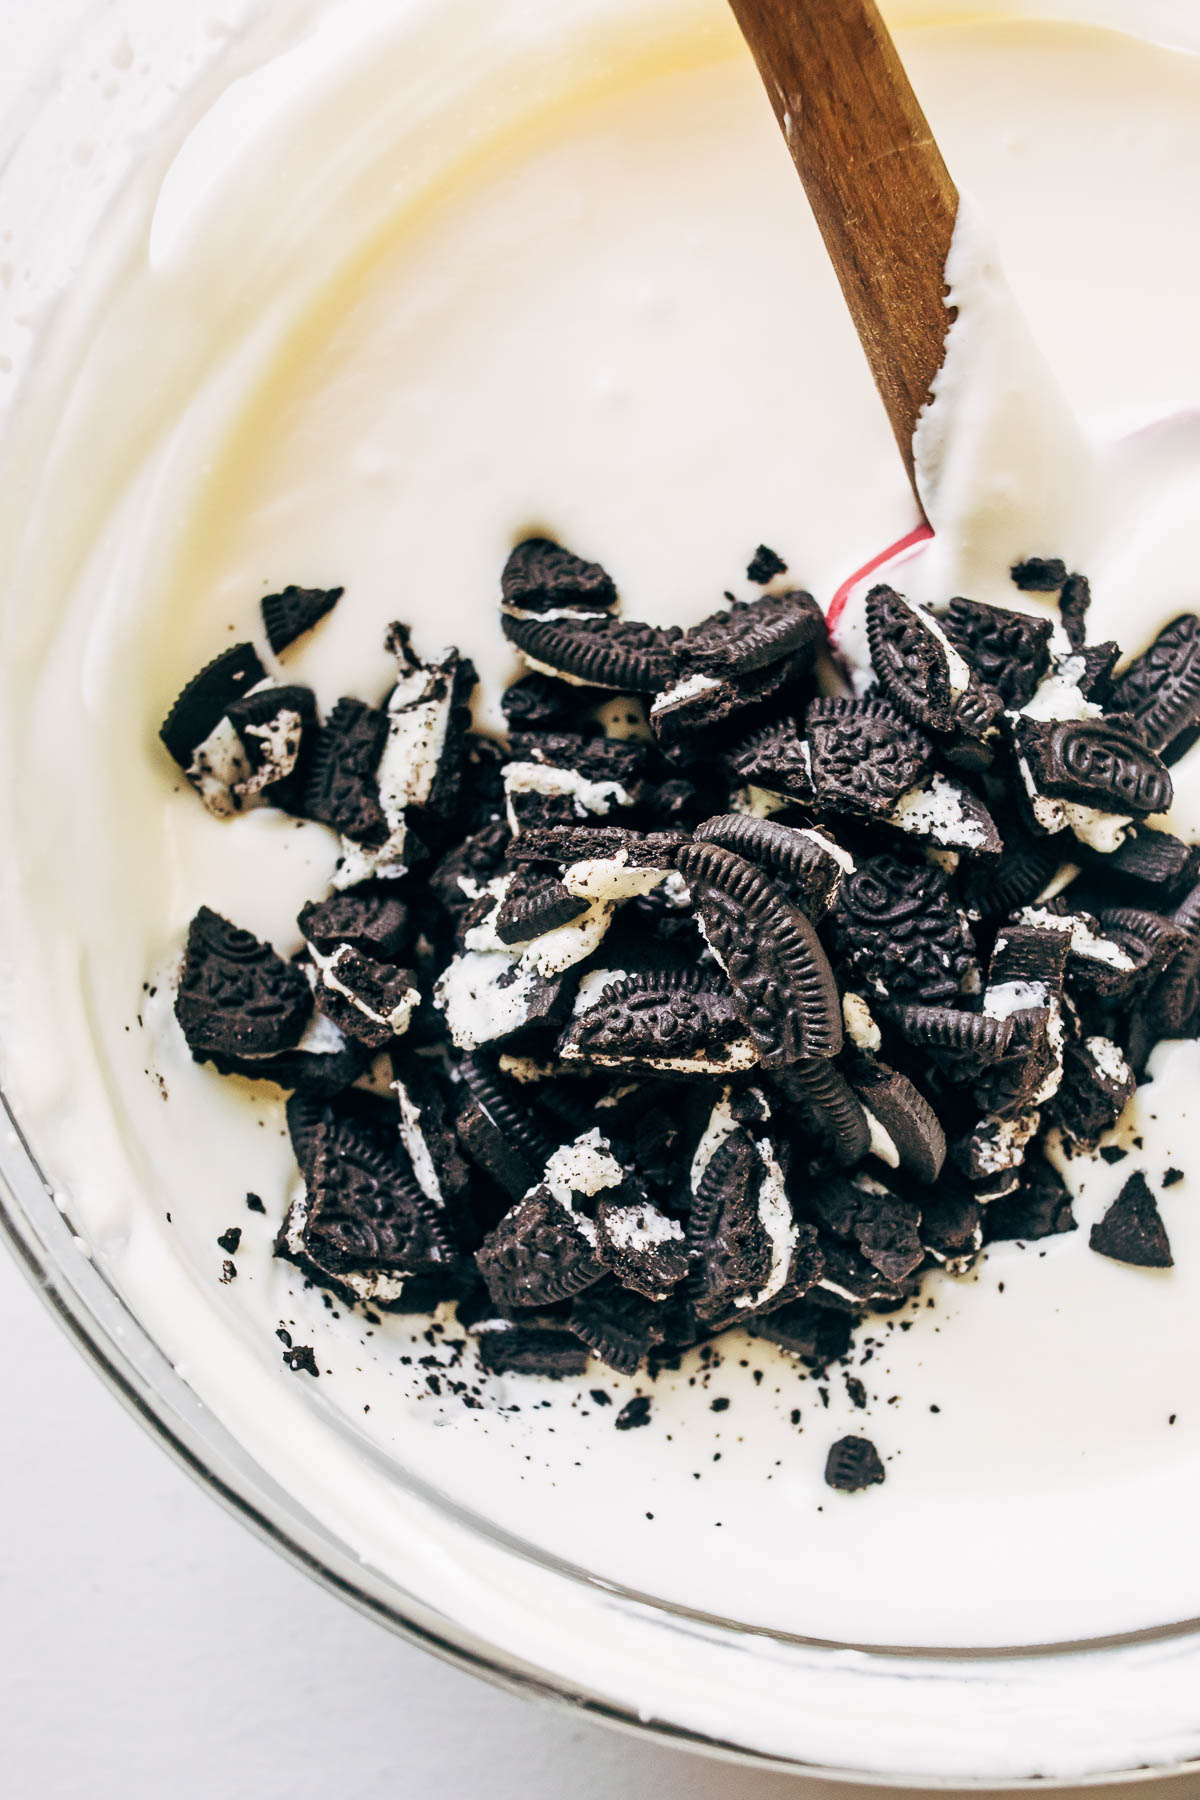 Crushed Oreo cookies in a bowl of white ice cream batter.